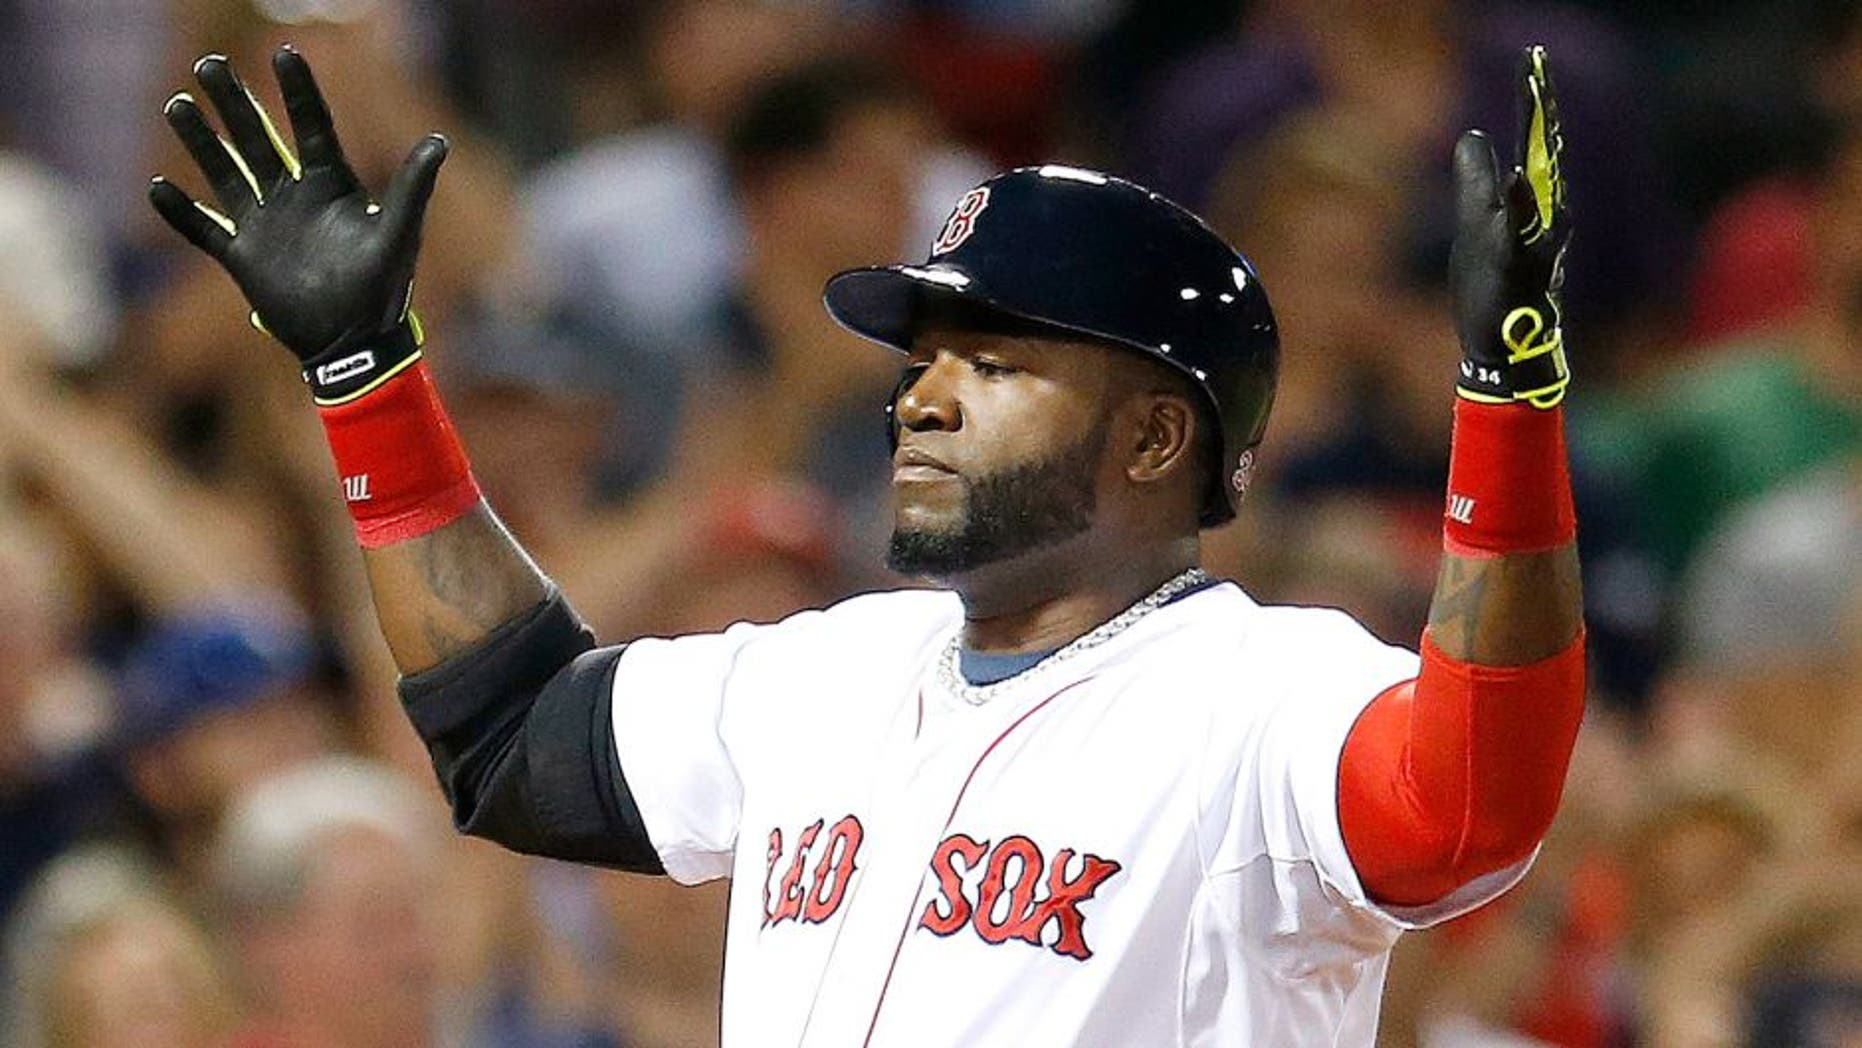 Boston Red Sox's David Ortiz celebrates his two-run home run during the third inning of a baseball game against the Houston Astros in Boston, Saturday, Aug. 16, 2014. (AP Photo/Michael Dwyer)